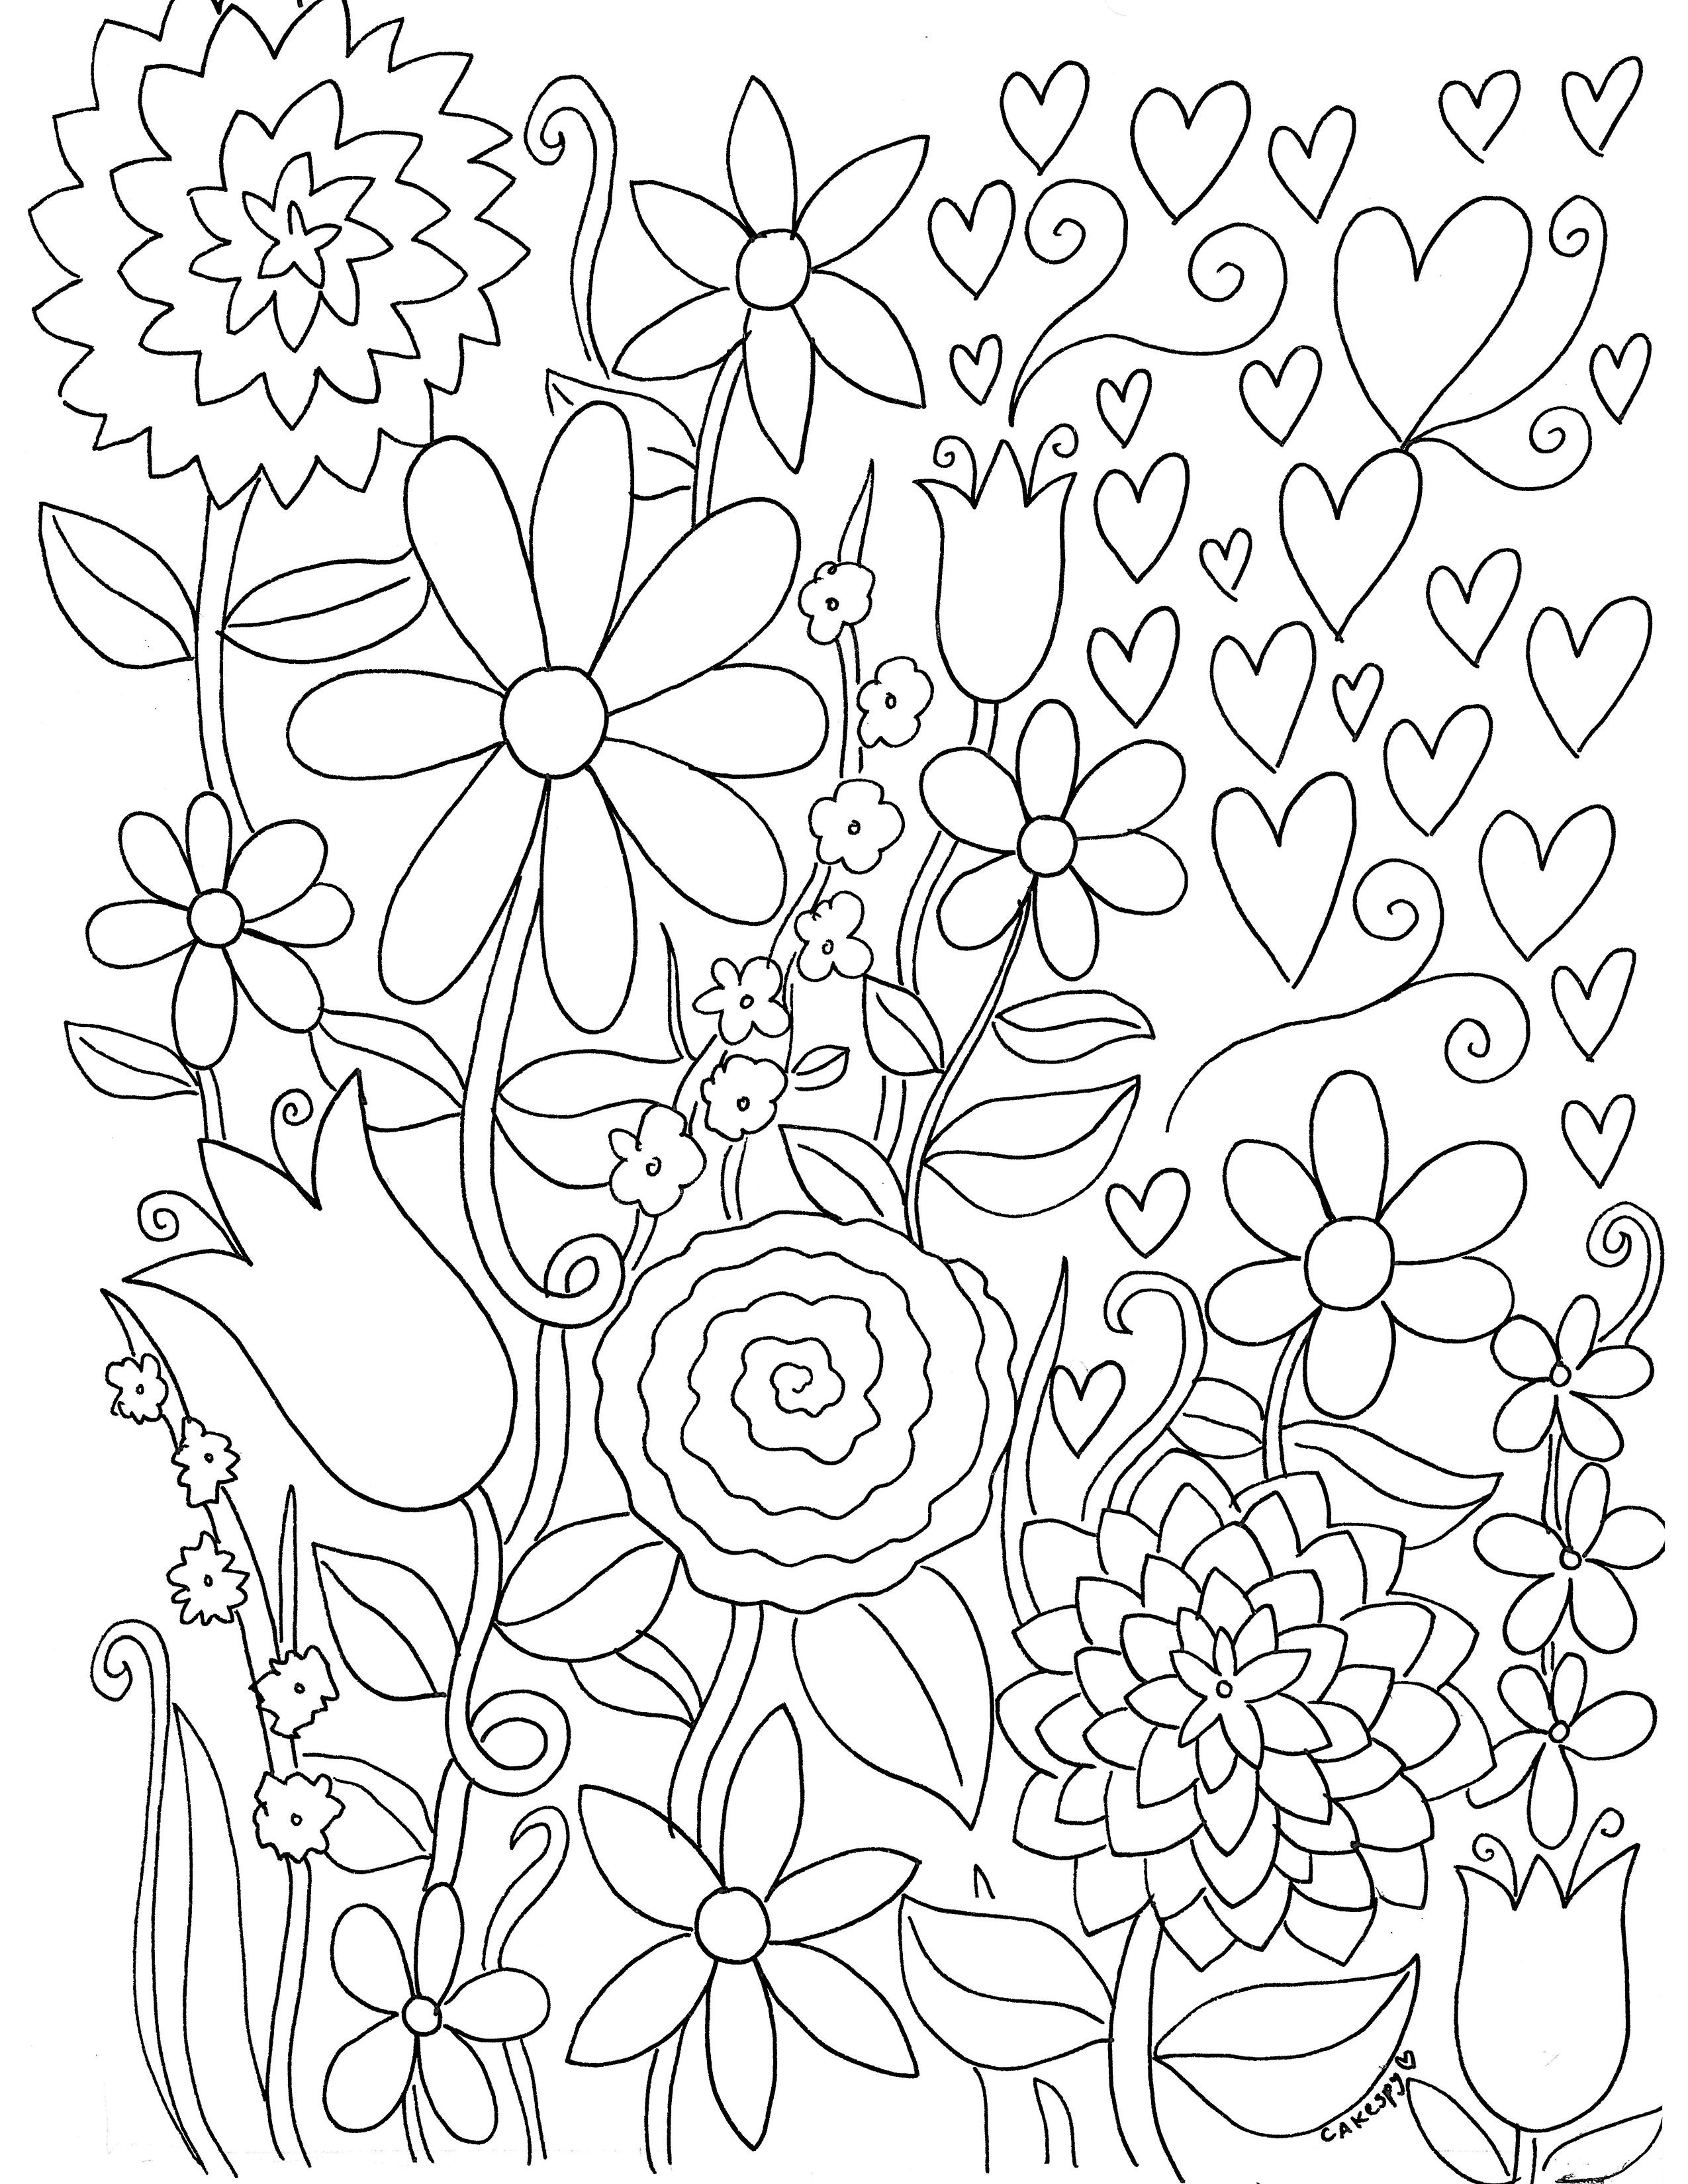 Free Paintnumbers For Adults Downloadable | *printable Art - Free Printable Paint By Number Coloring Pages